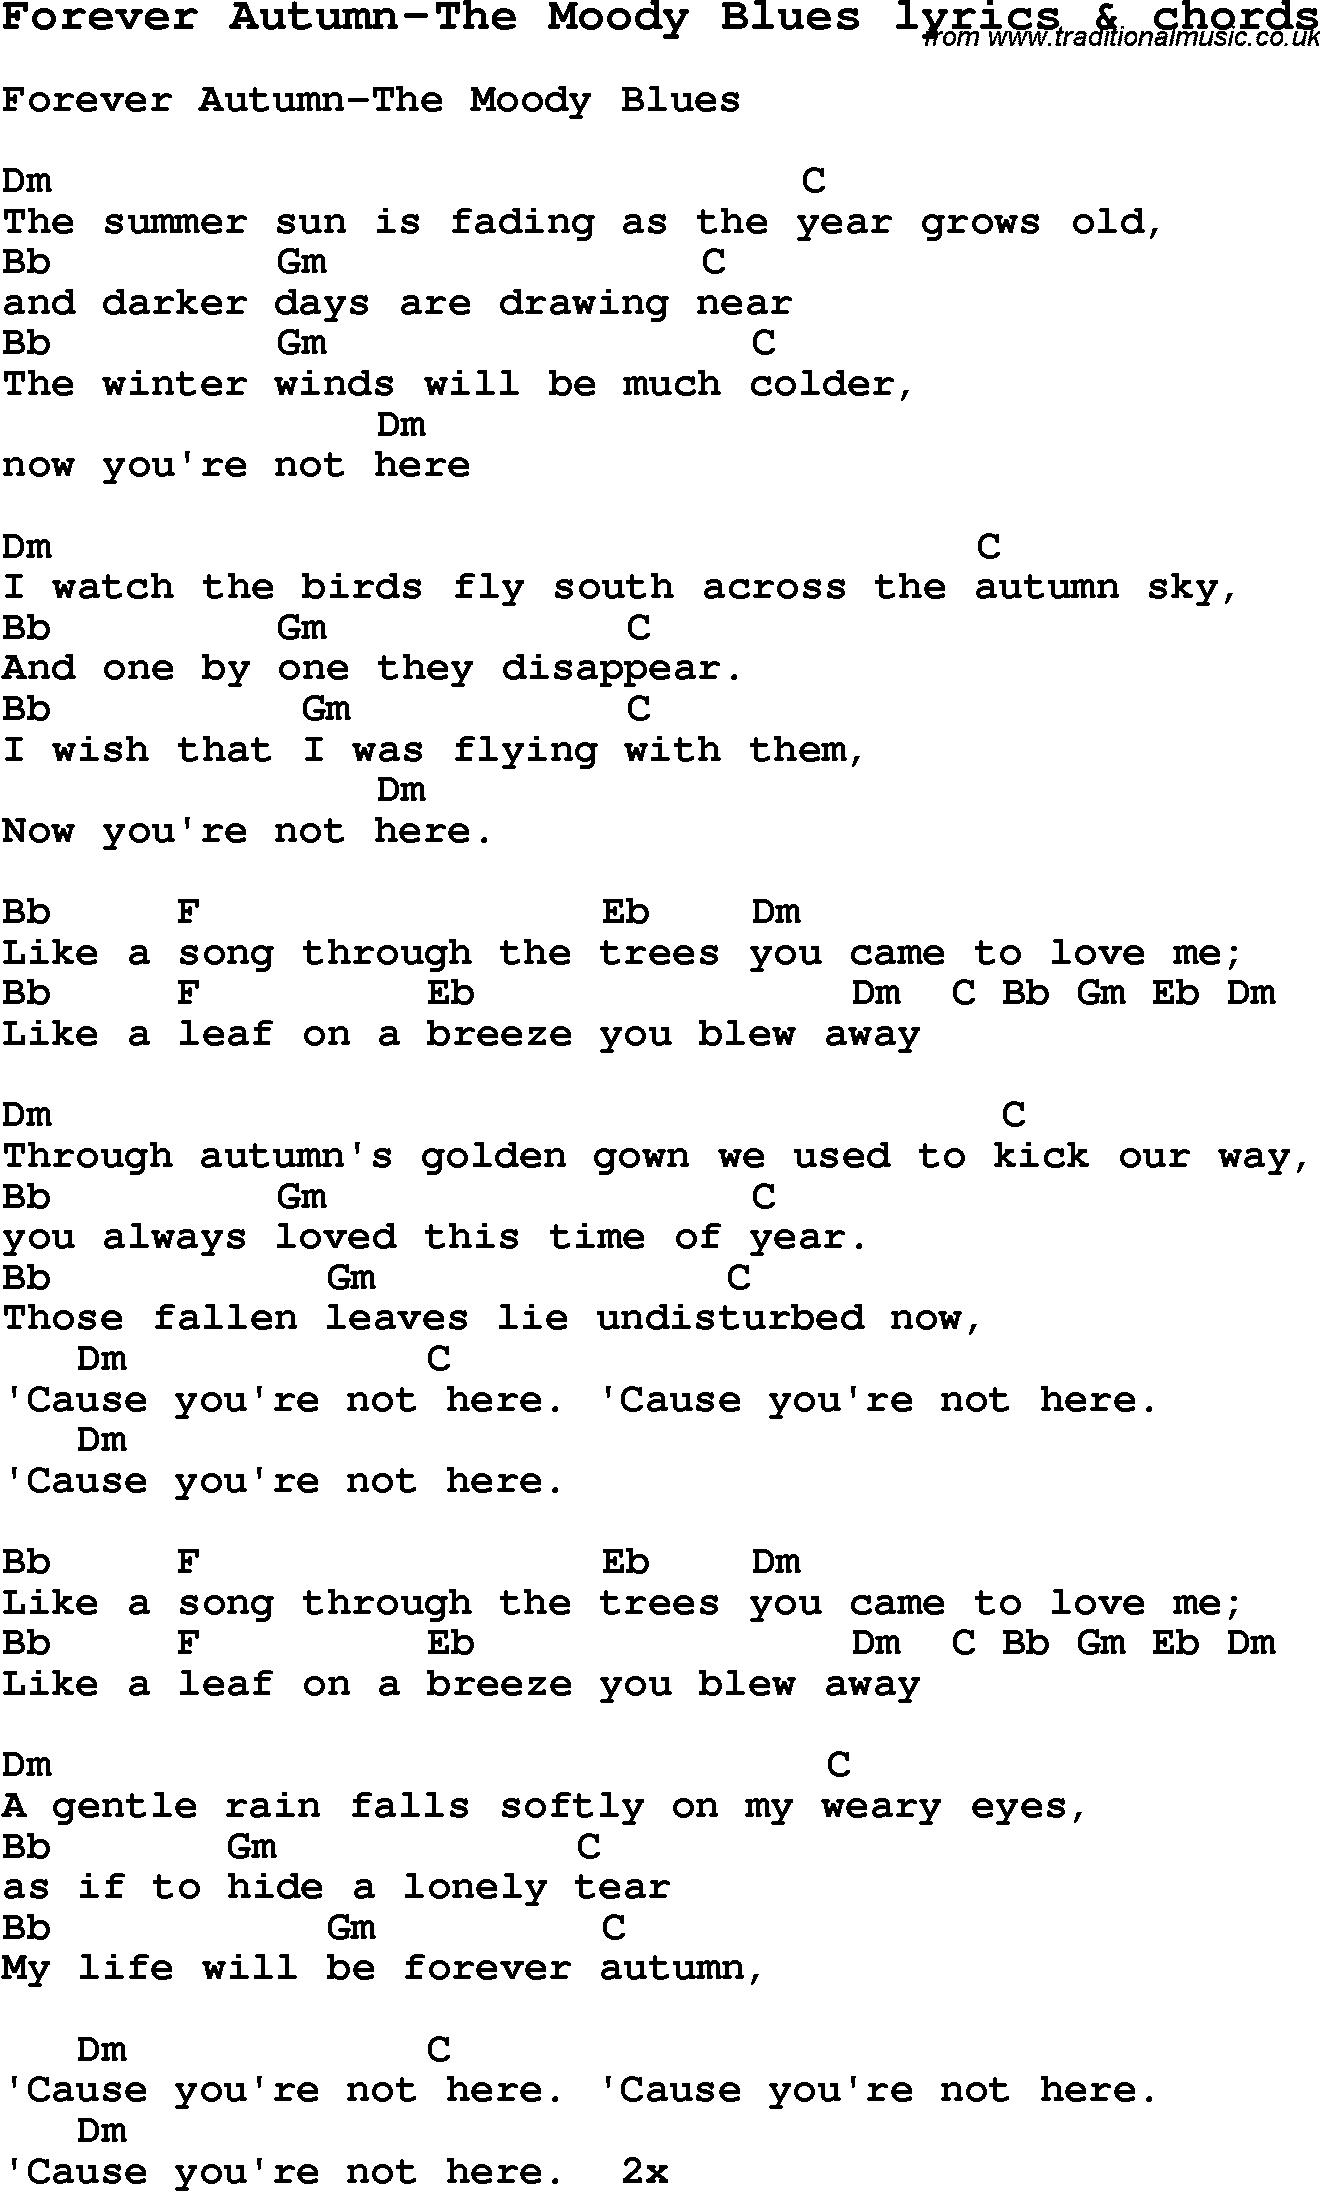 Love Song Lyrics for:Forever Autumn-The Moody Blues with